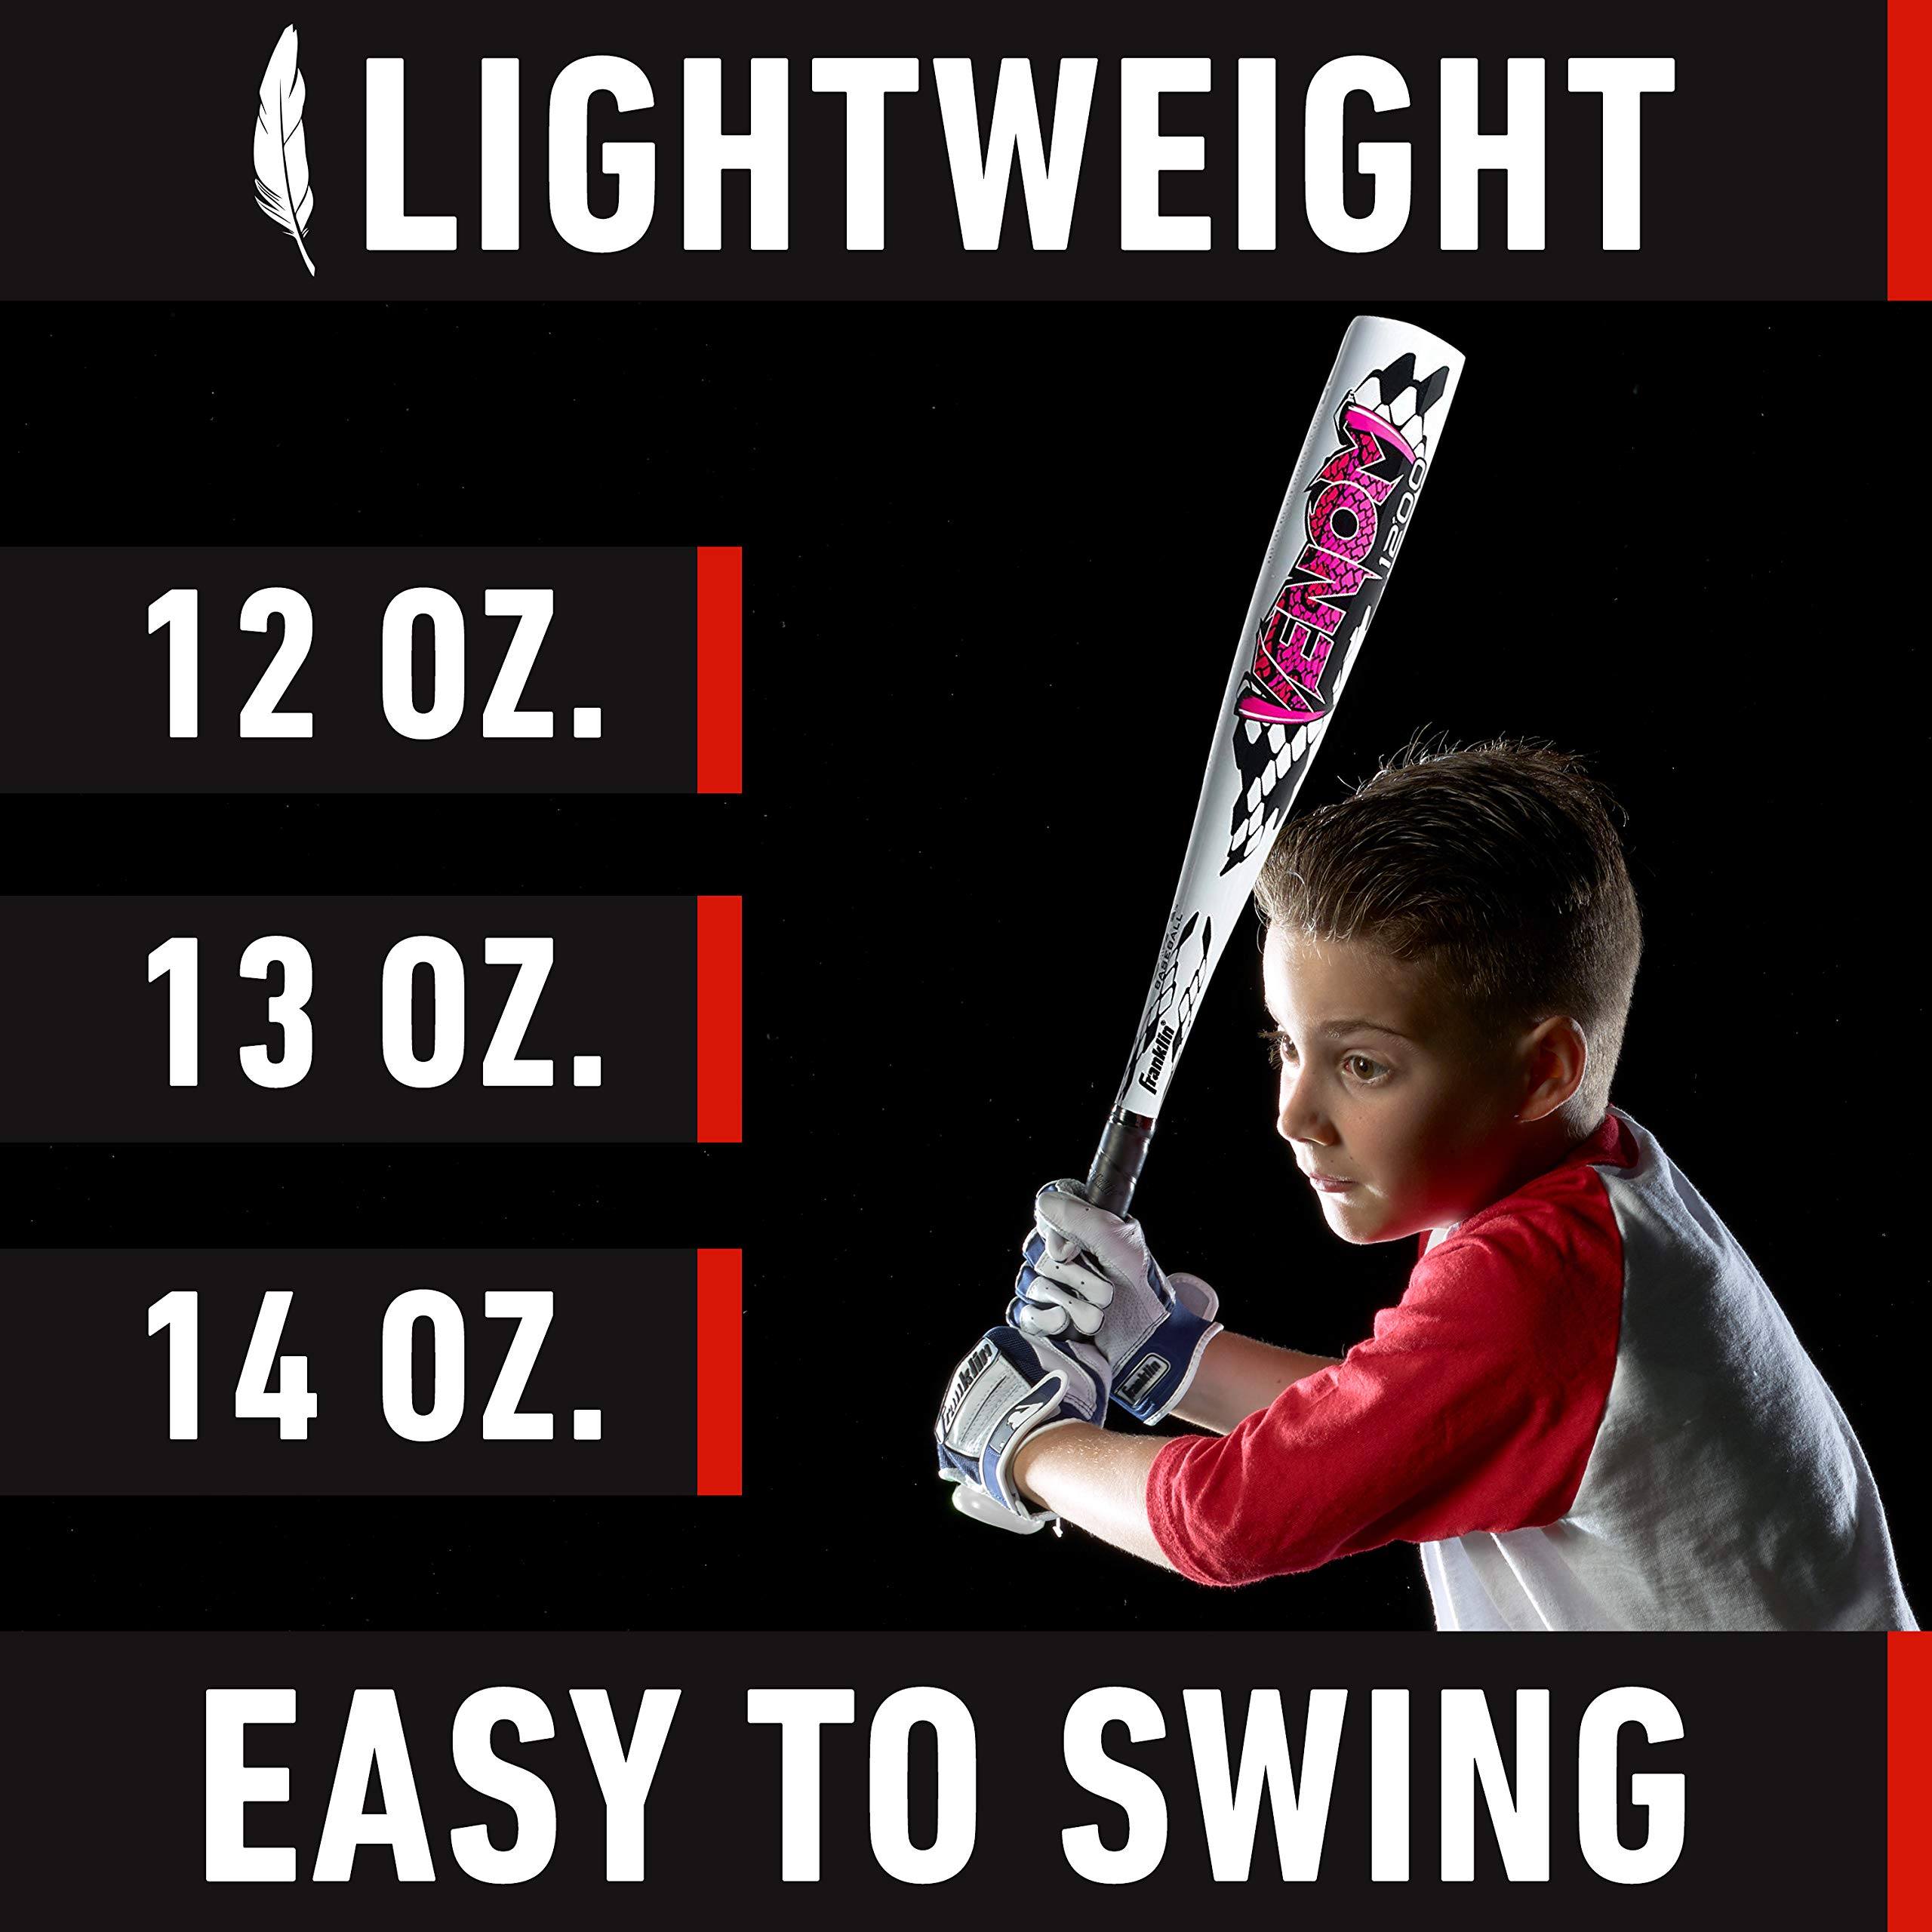 Franklin Sports Venom 1000 Official Teeball Bat Perfect for Soft Core Tee Balls, 25''/13 oz by Franklin Sports (Image #6)